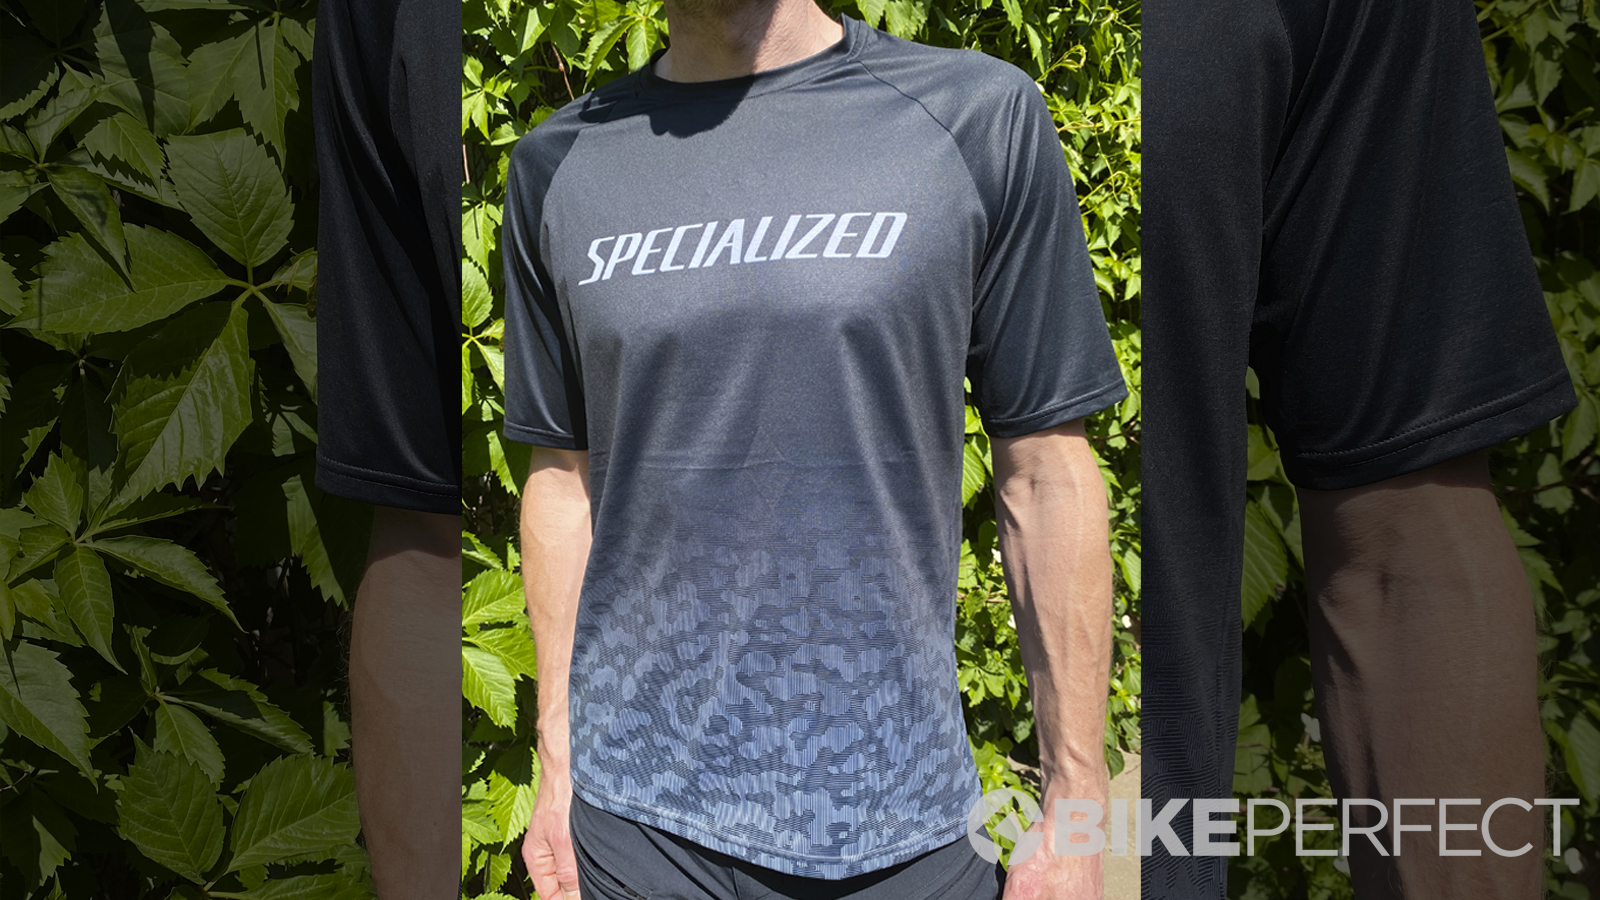 Specialized Enduro kit reviewed